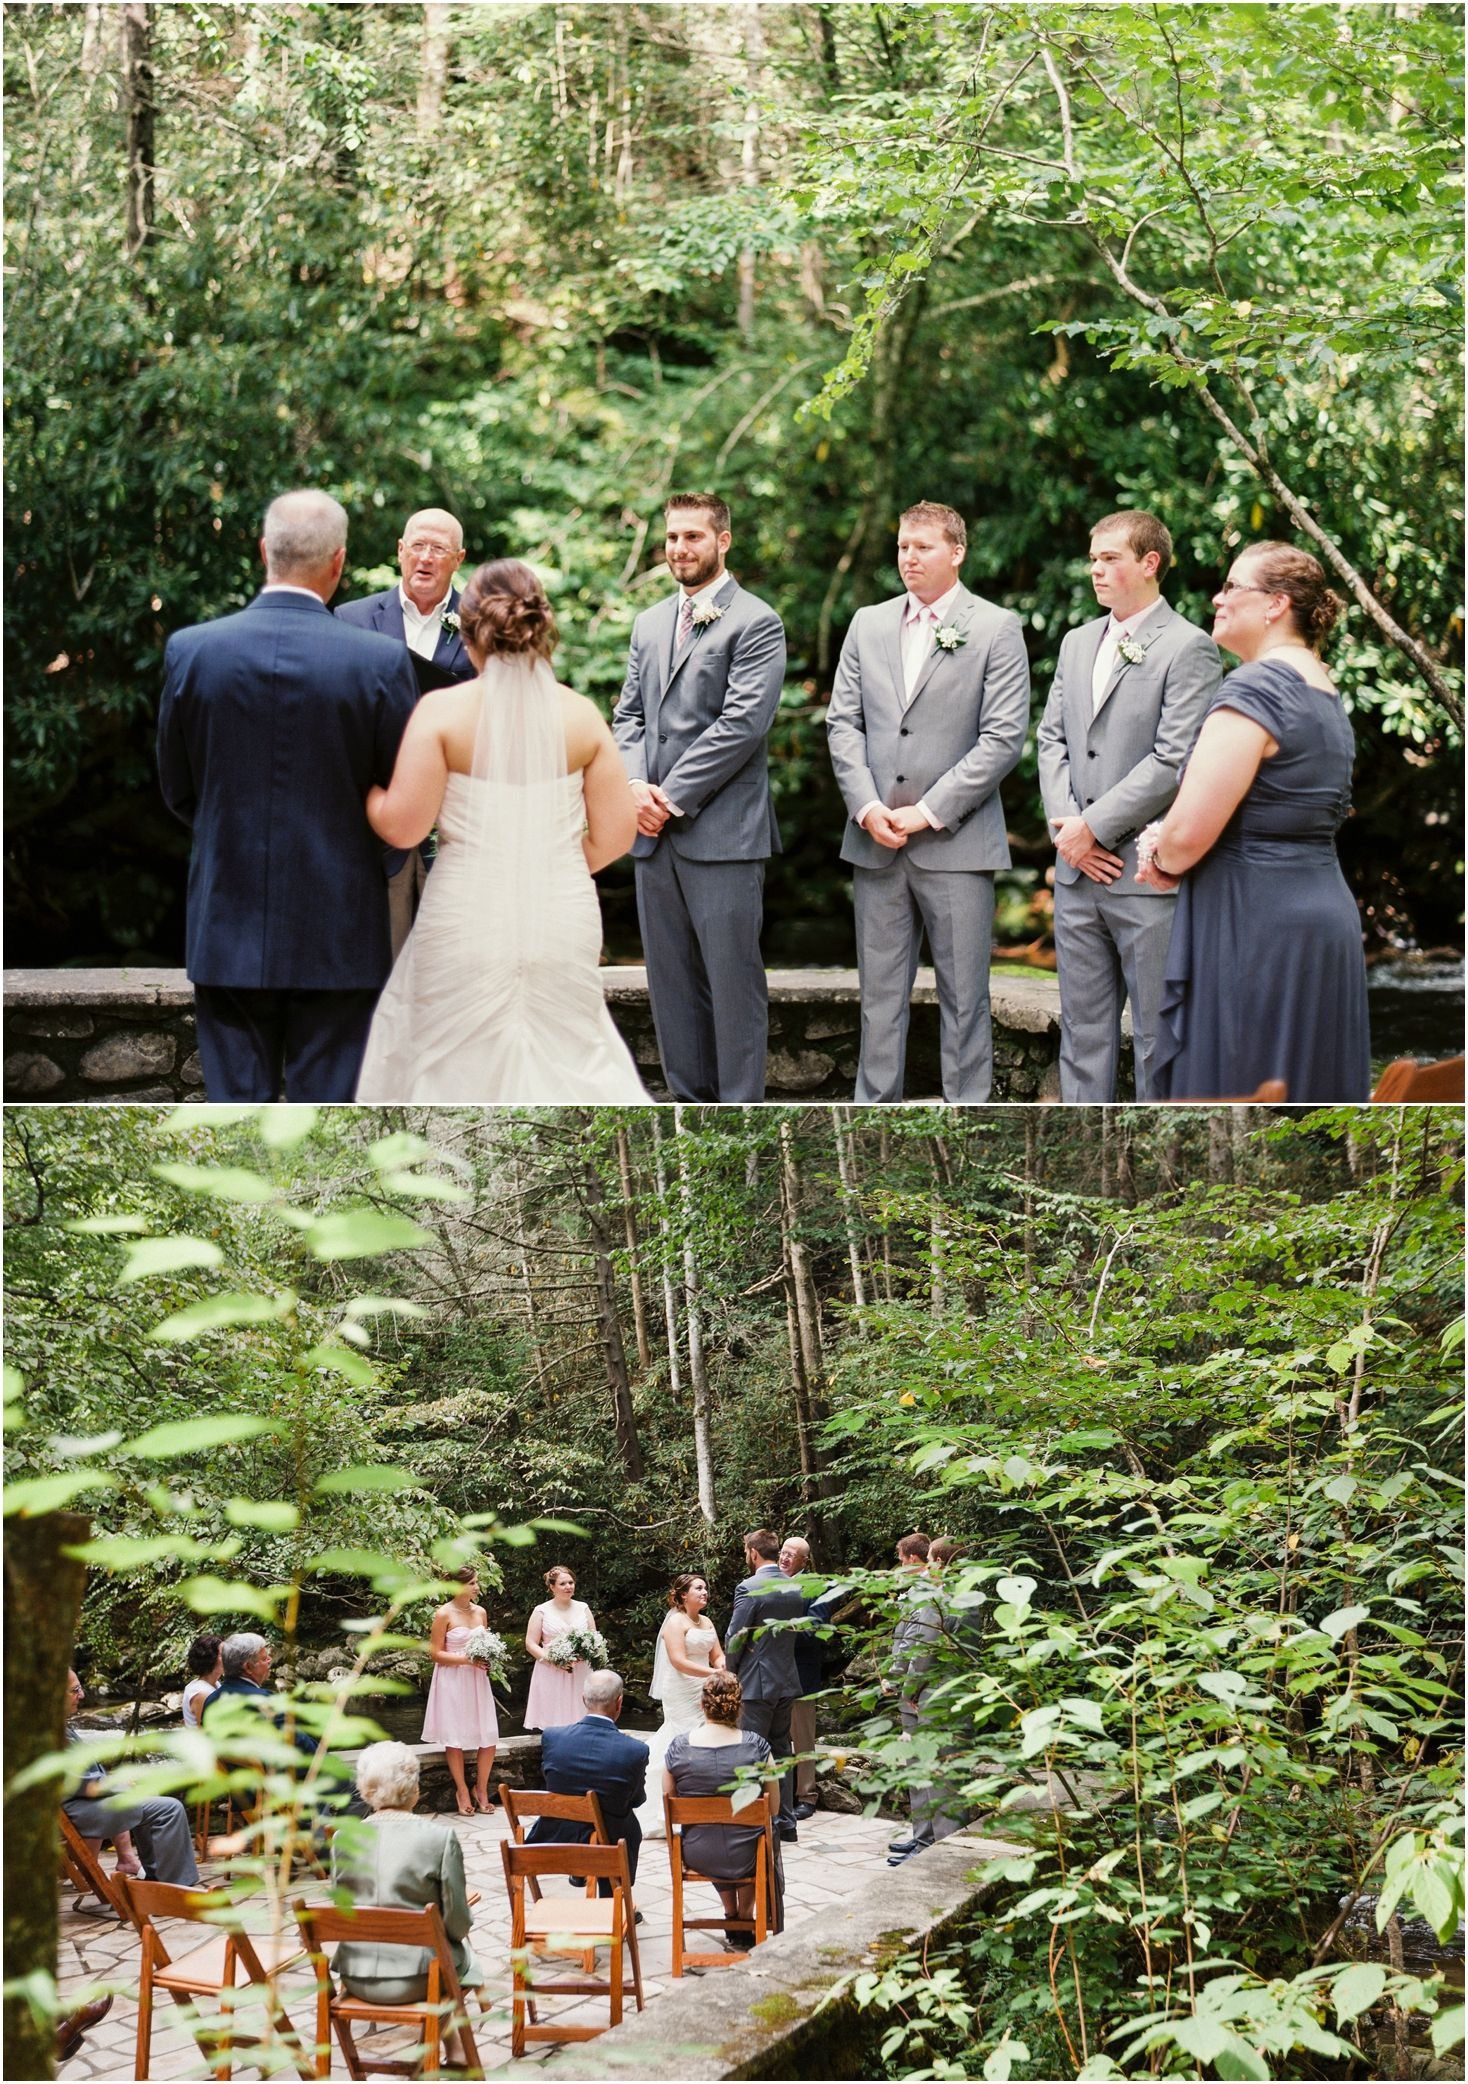 Summer Mountain Wedding At Spence Cabin In The Great Smoky